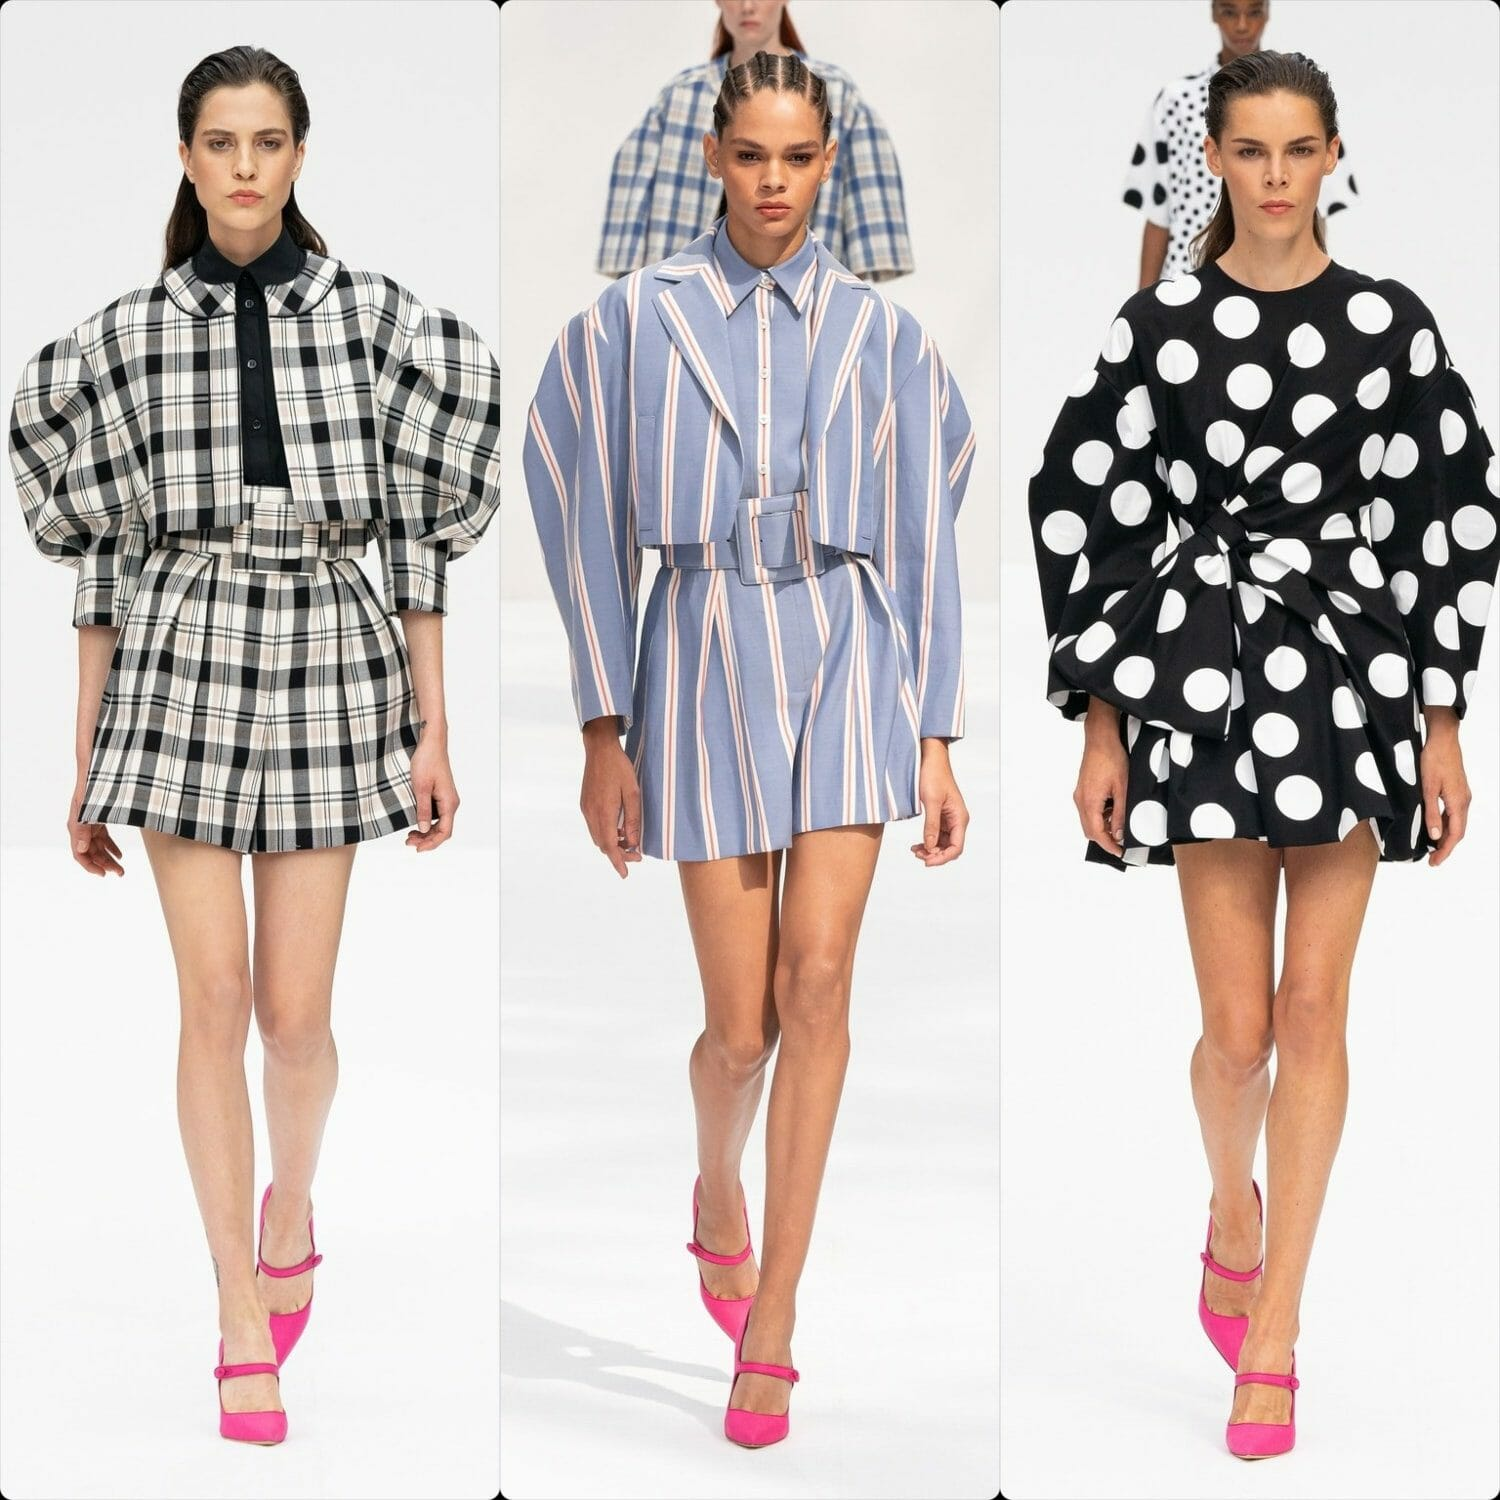 Carolina Herrera Spring Summer 2020 New York. RUNWAY MAGAZINE ® Collections. RUNWAY NOW / RUNWAY NEW